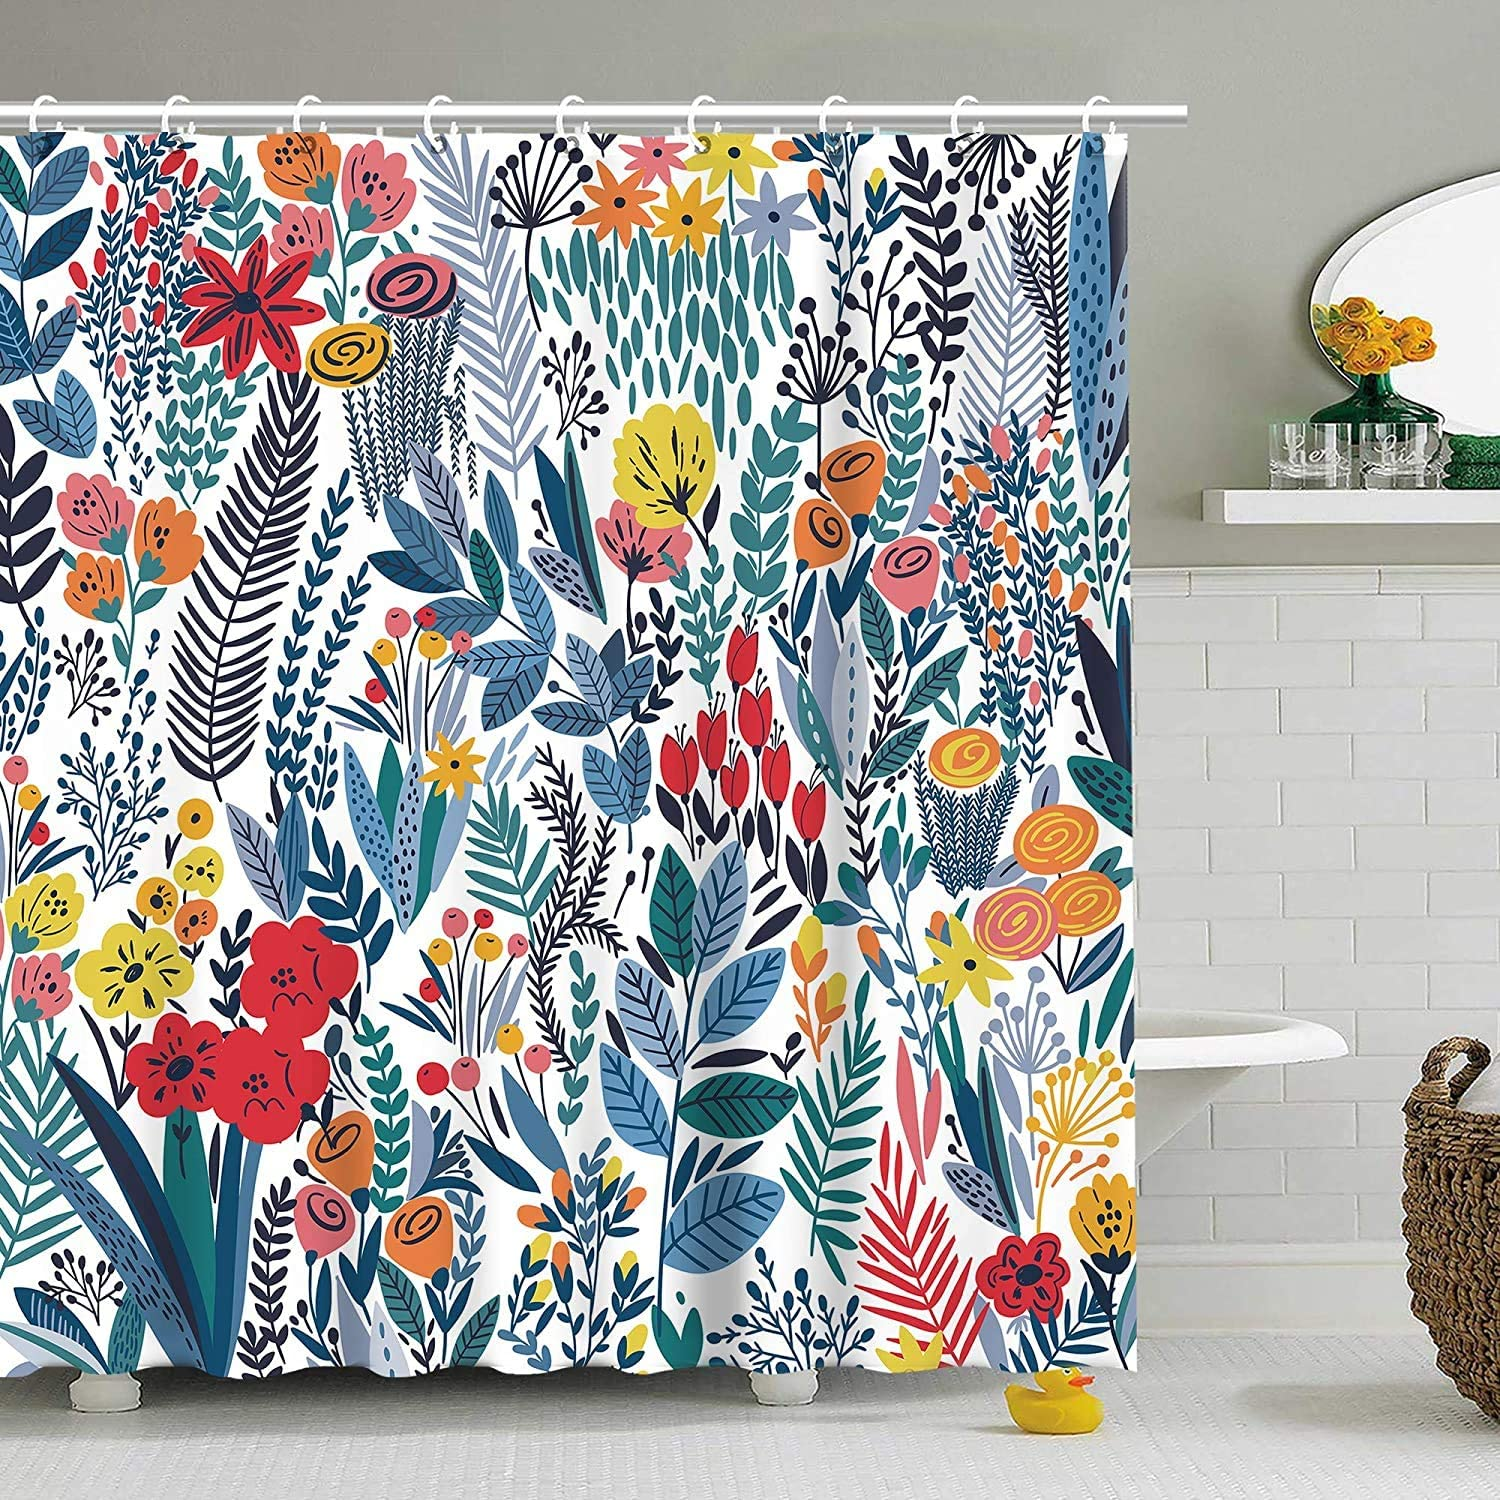 Stacy Fay Shower Curtain, Floral Shower Curtains Set for Bathroom, Waterproof Fabric Bath Curtain with Hooks, 72x72 Inch, Decorative Warm Color, White Background Blue Leaves and Flowers